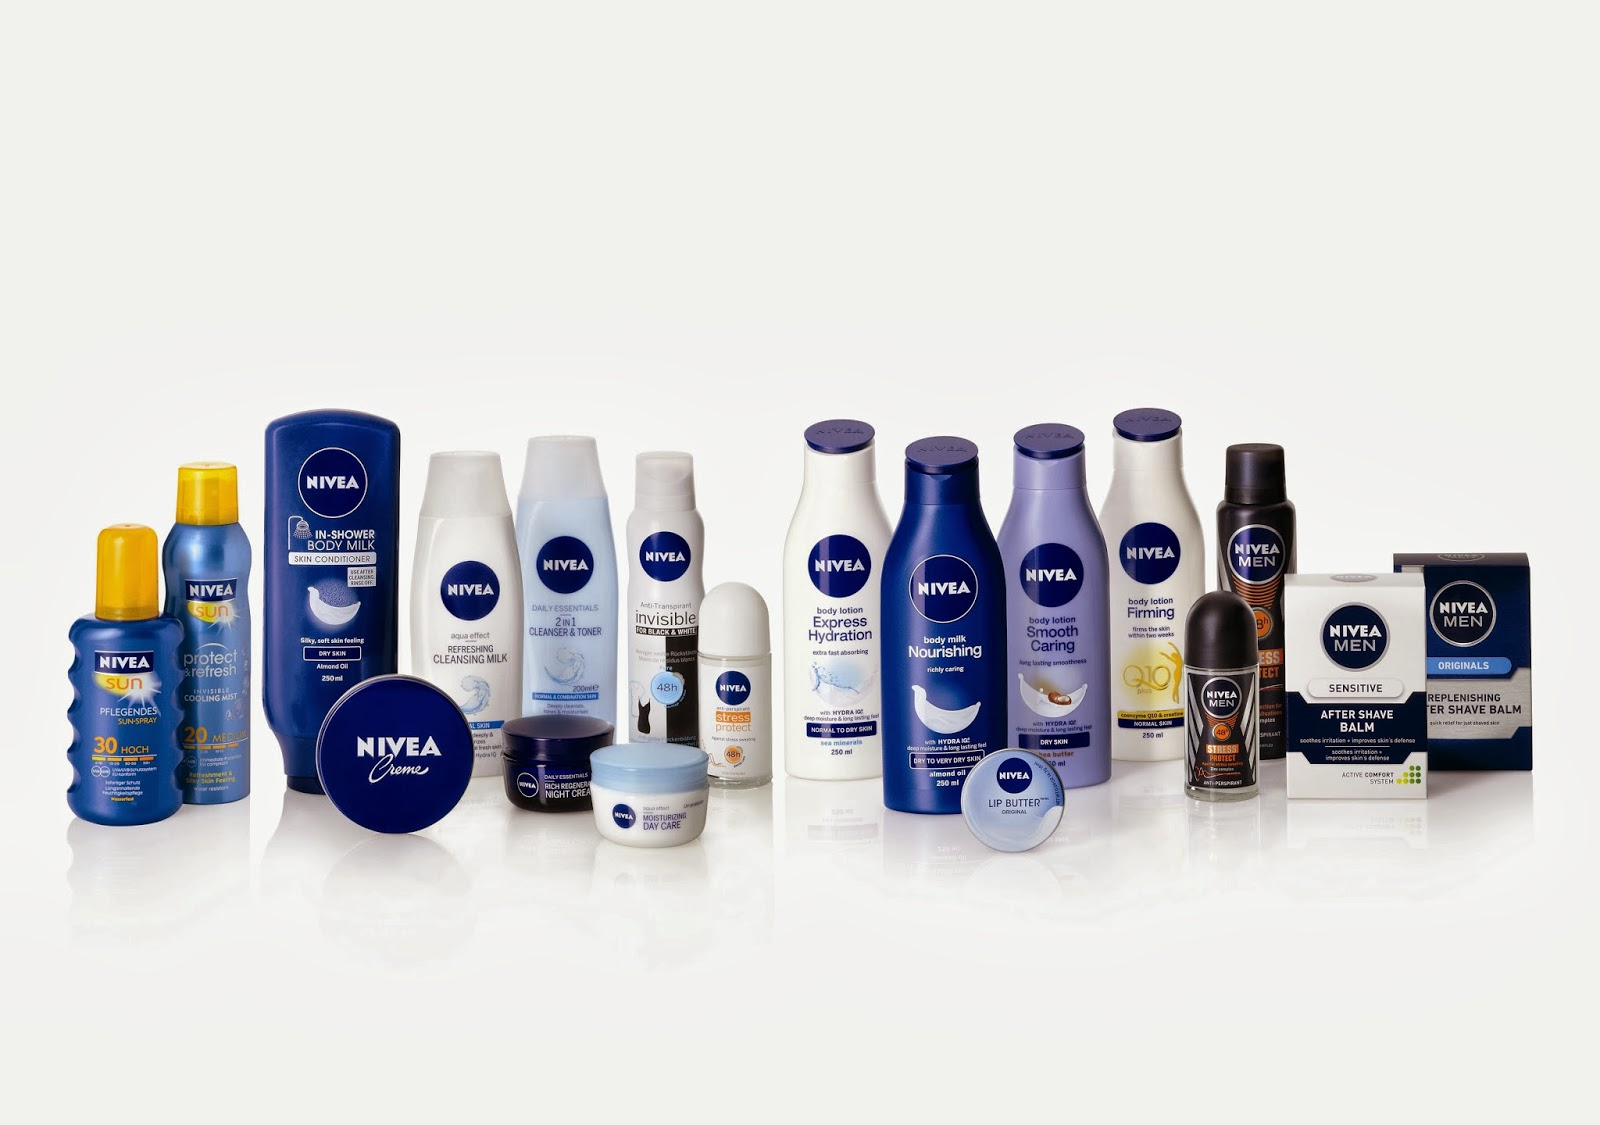 Nivea products all kinds